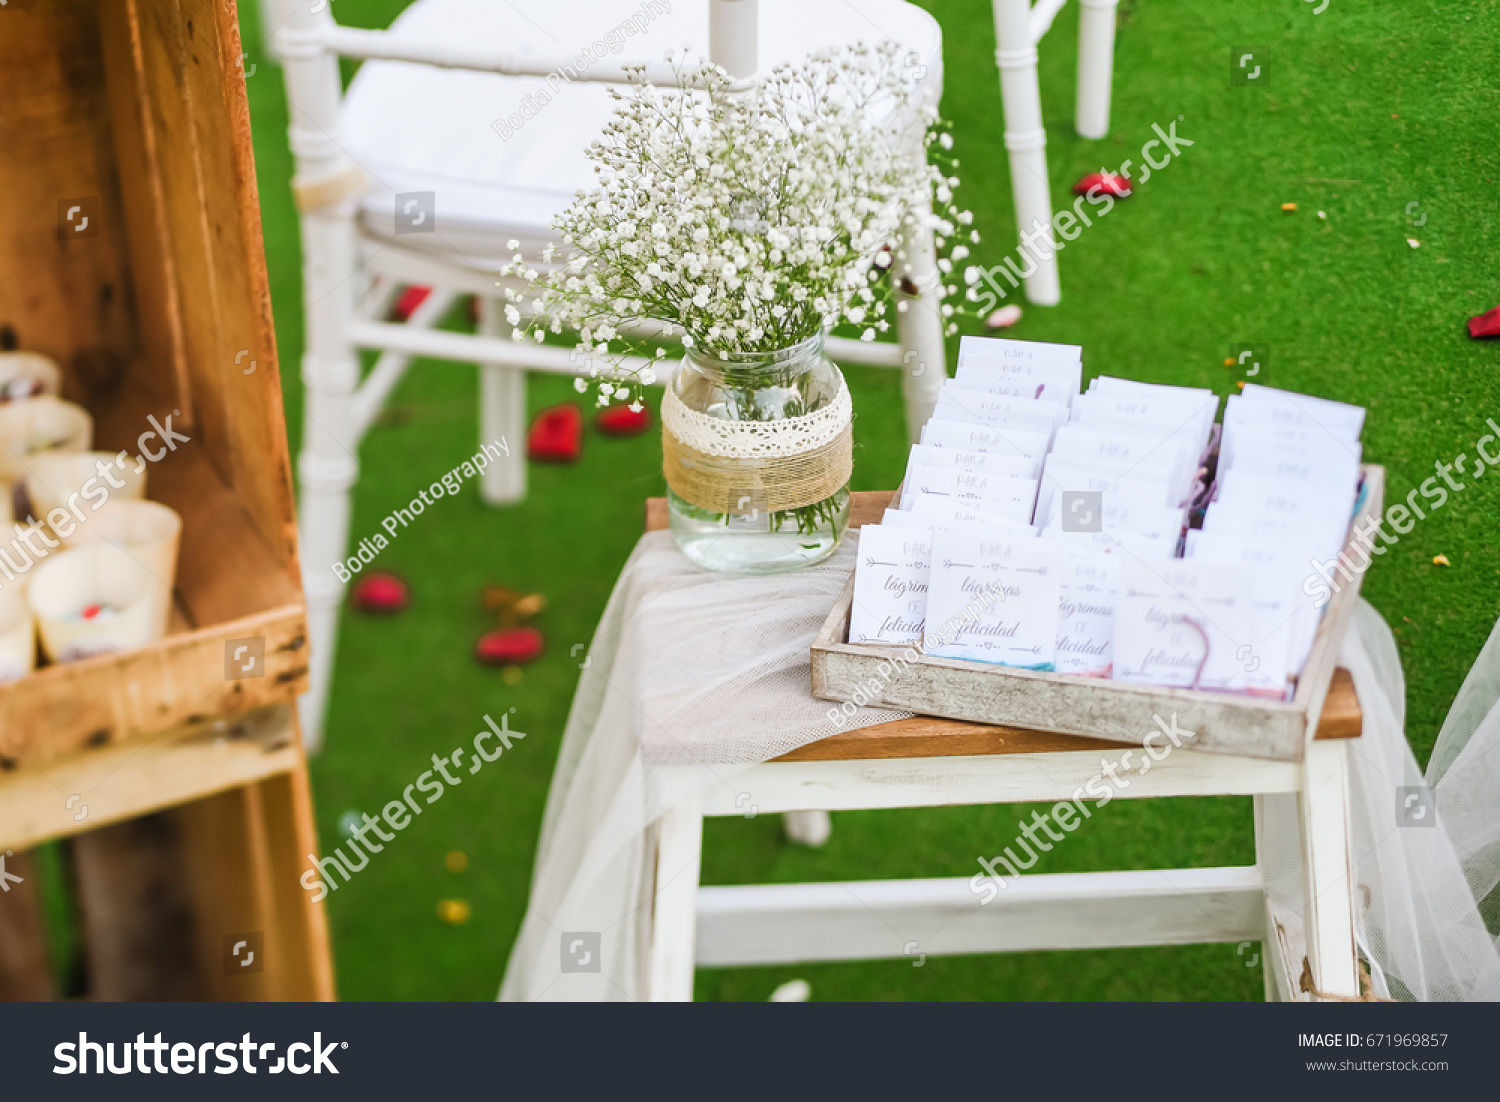 Rustic wedding outdoor photo zone hand stock photo 100 legal rustic wedding outdoor photo zone hand made wedding decorations includes wooden boxes vase with junglespirit Choice Image